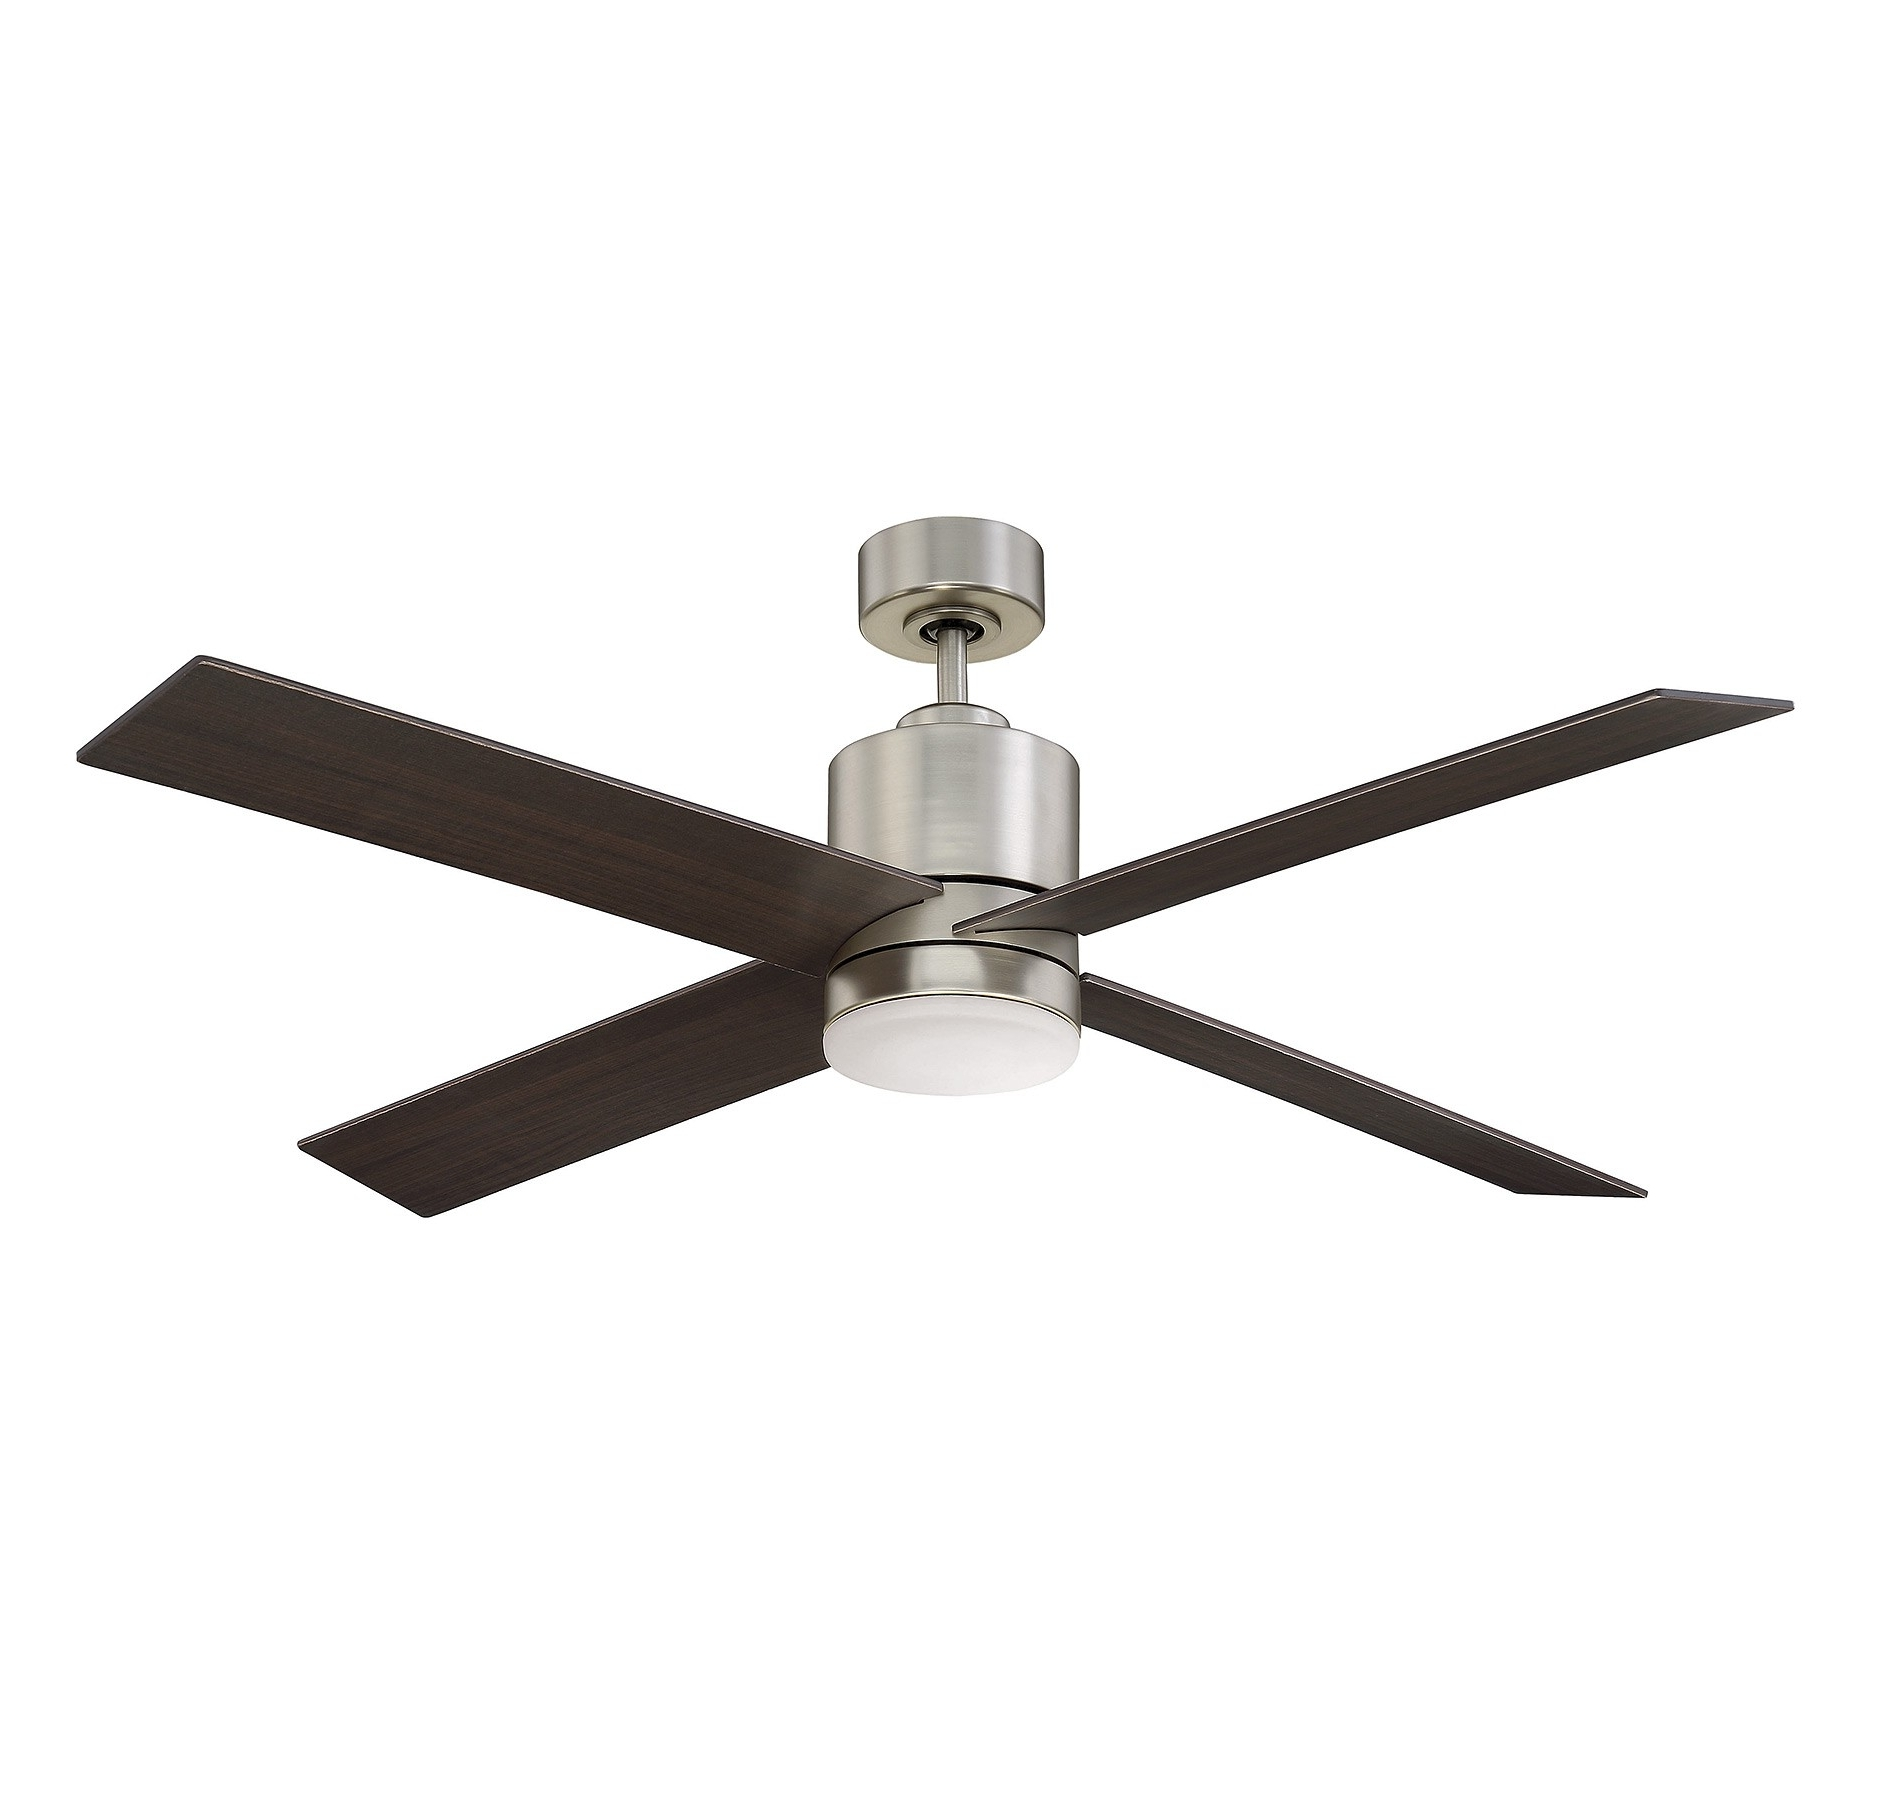 Recent 52 6110 4Cn Sn Dayton 52 Inch 4 Blade Ceiling Fansavoy House Pertaining To Outdoor Ceiling Fans With Metal Blades (View 17 of 20)